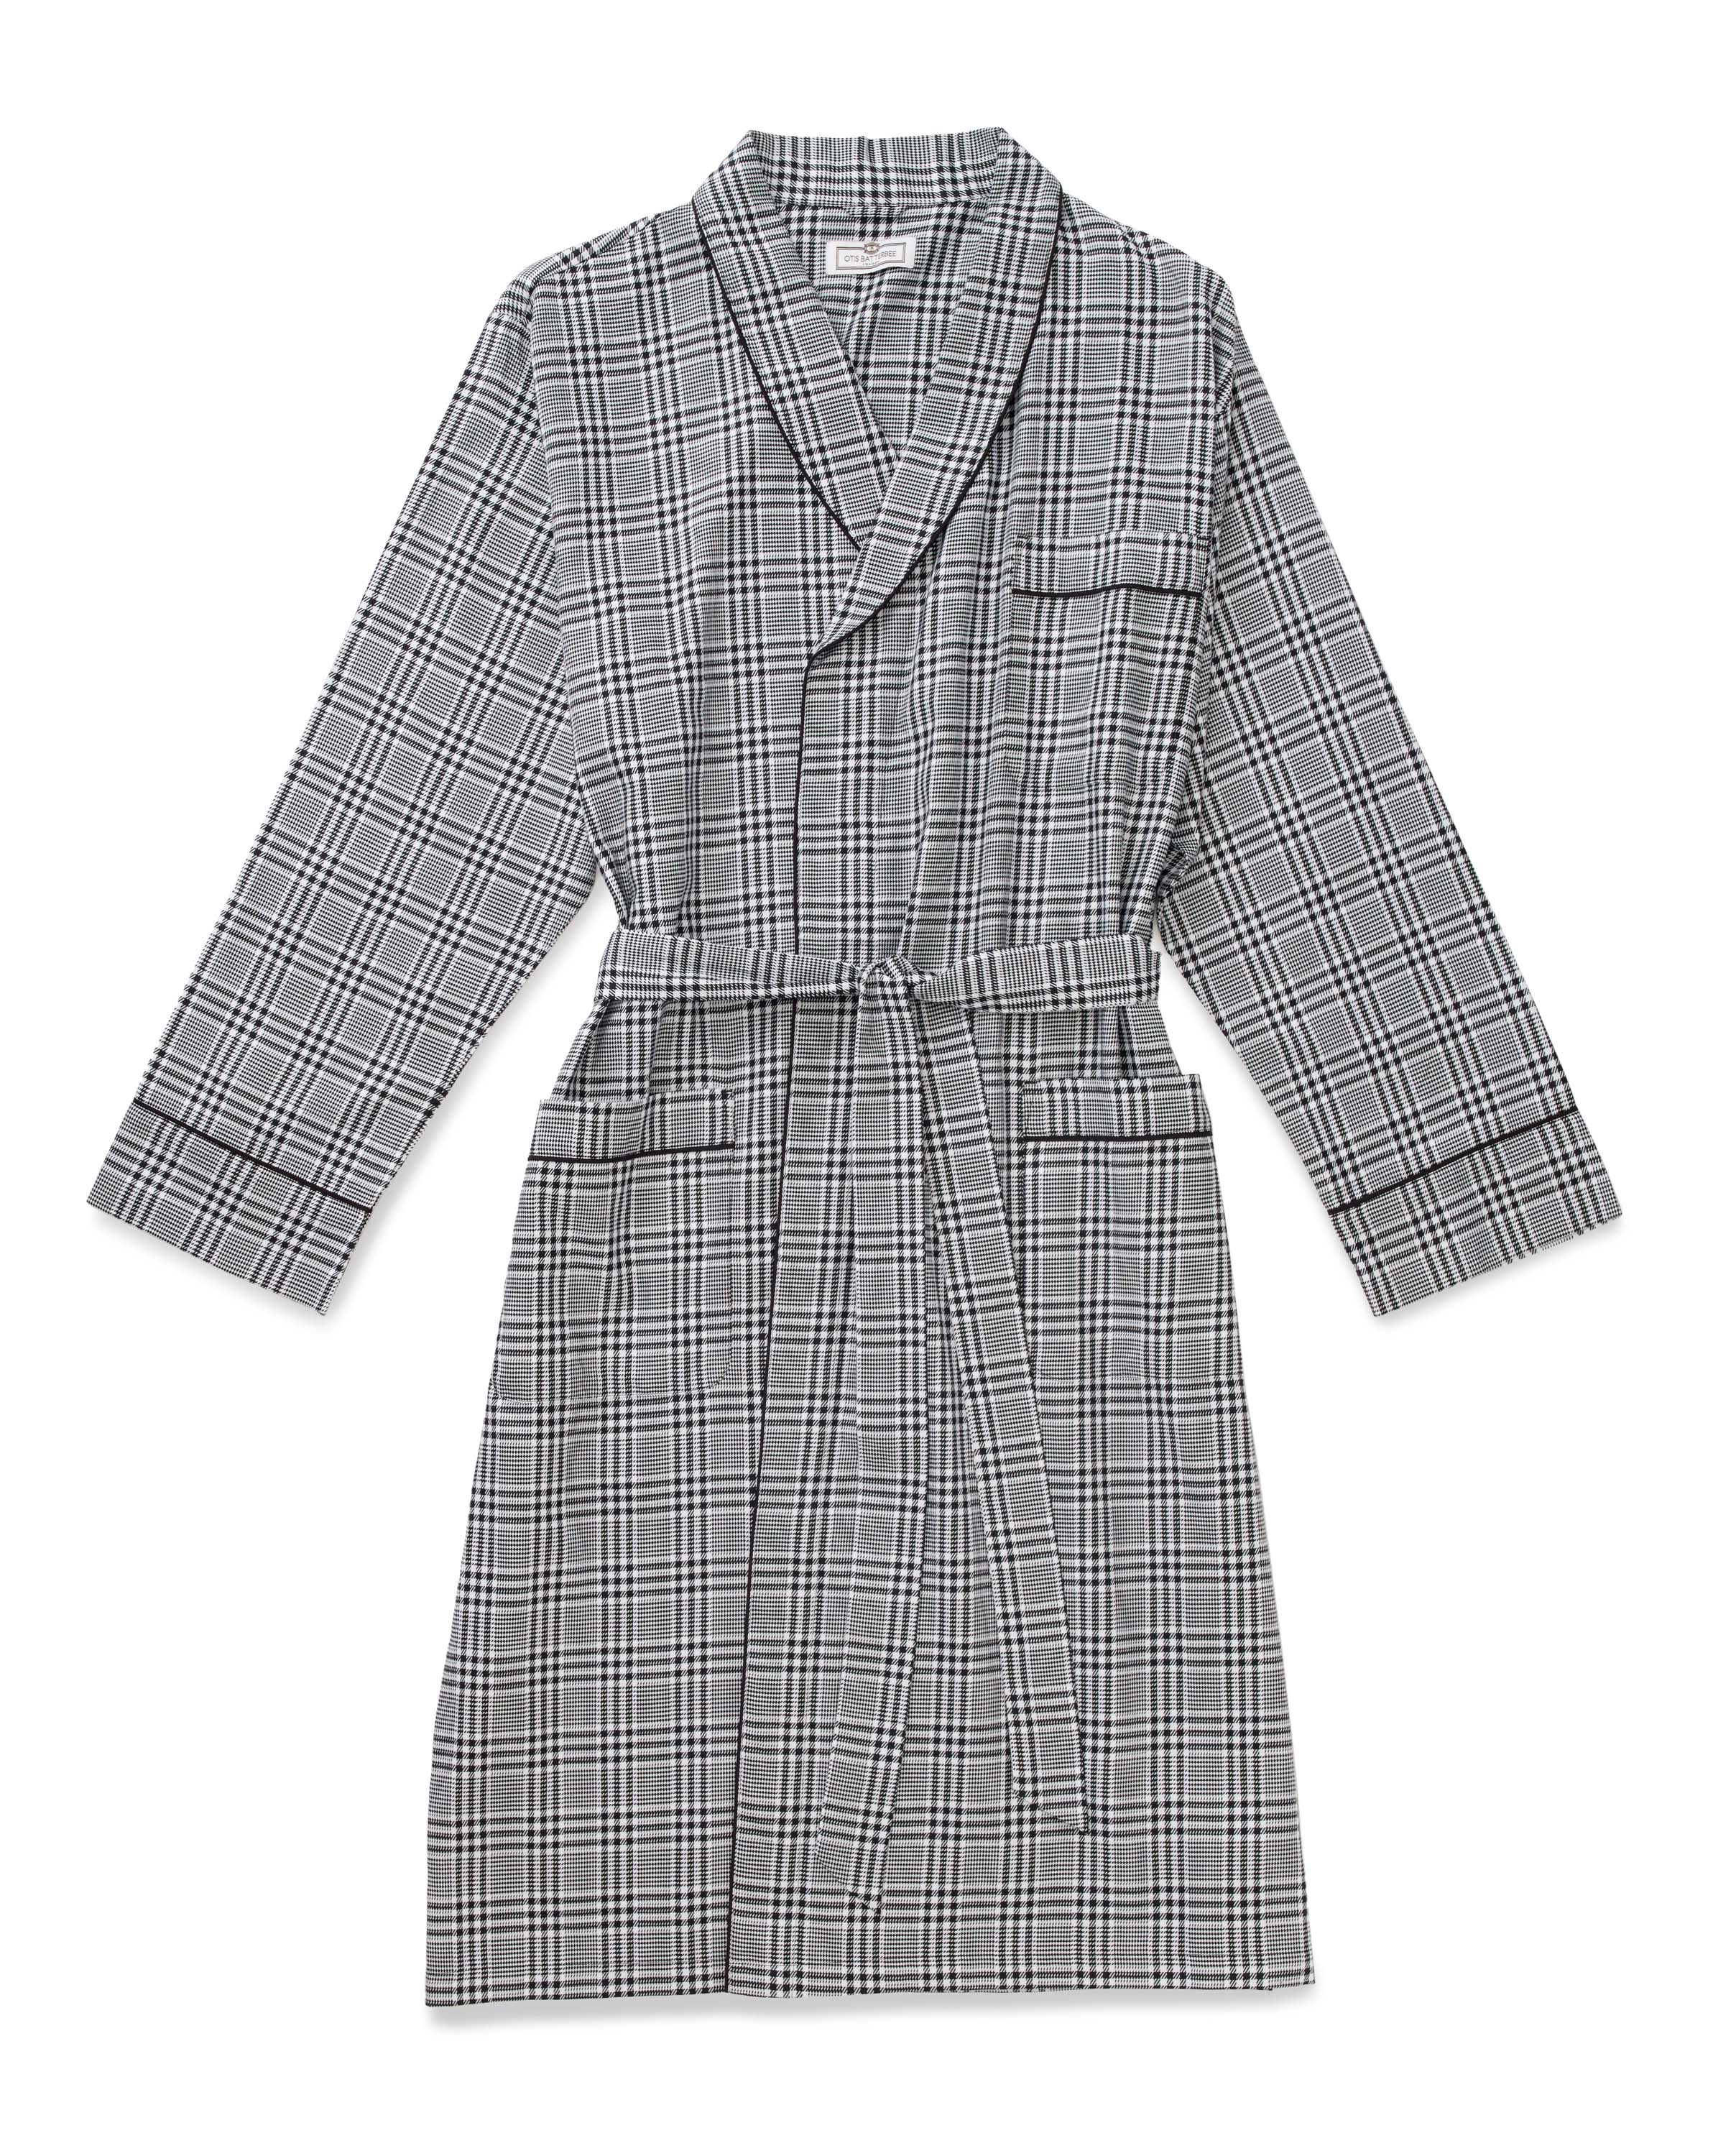 14662 Prince of Wales Dressing Gown.jpg